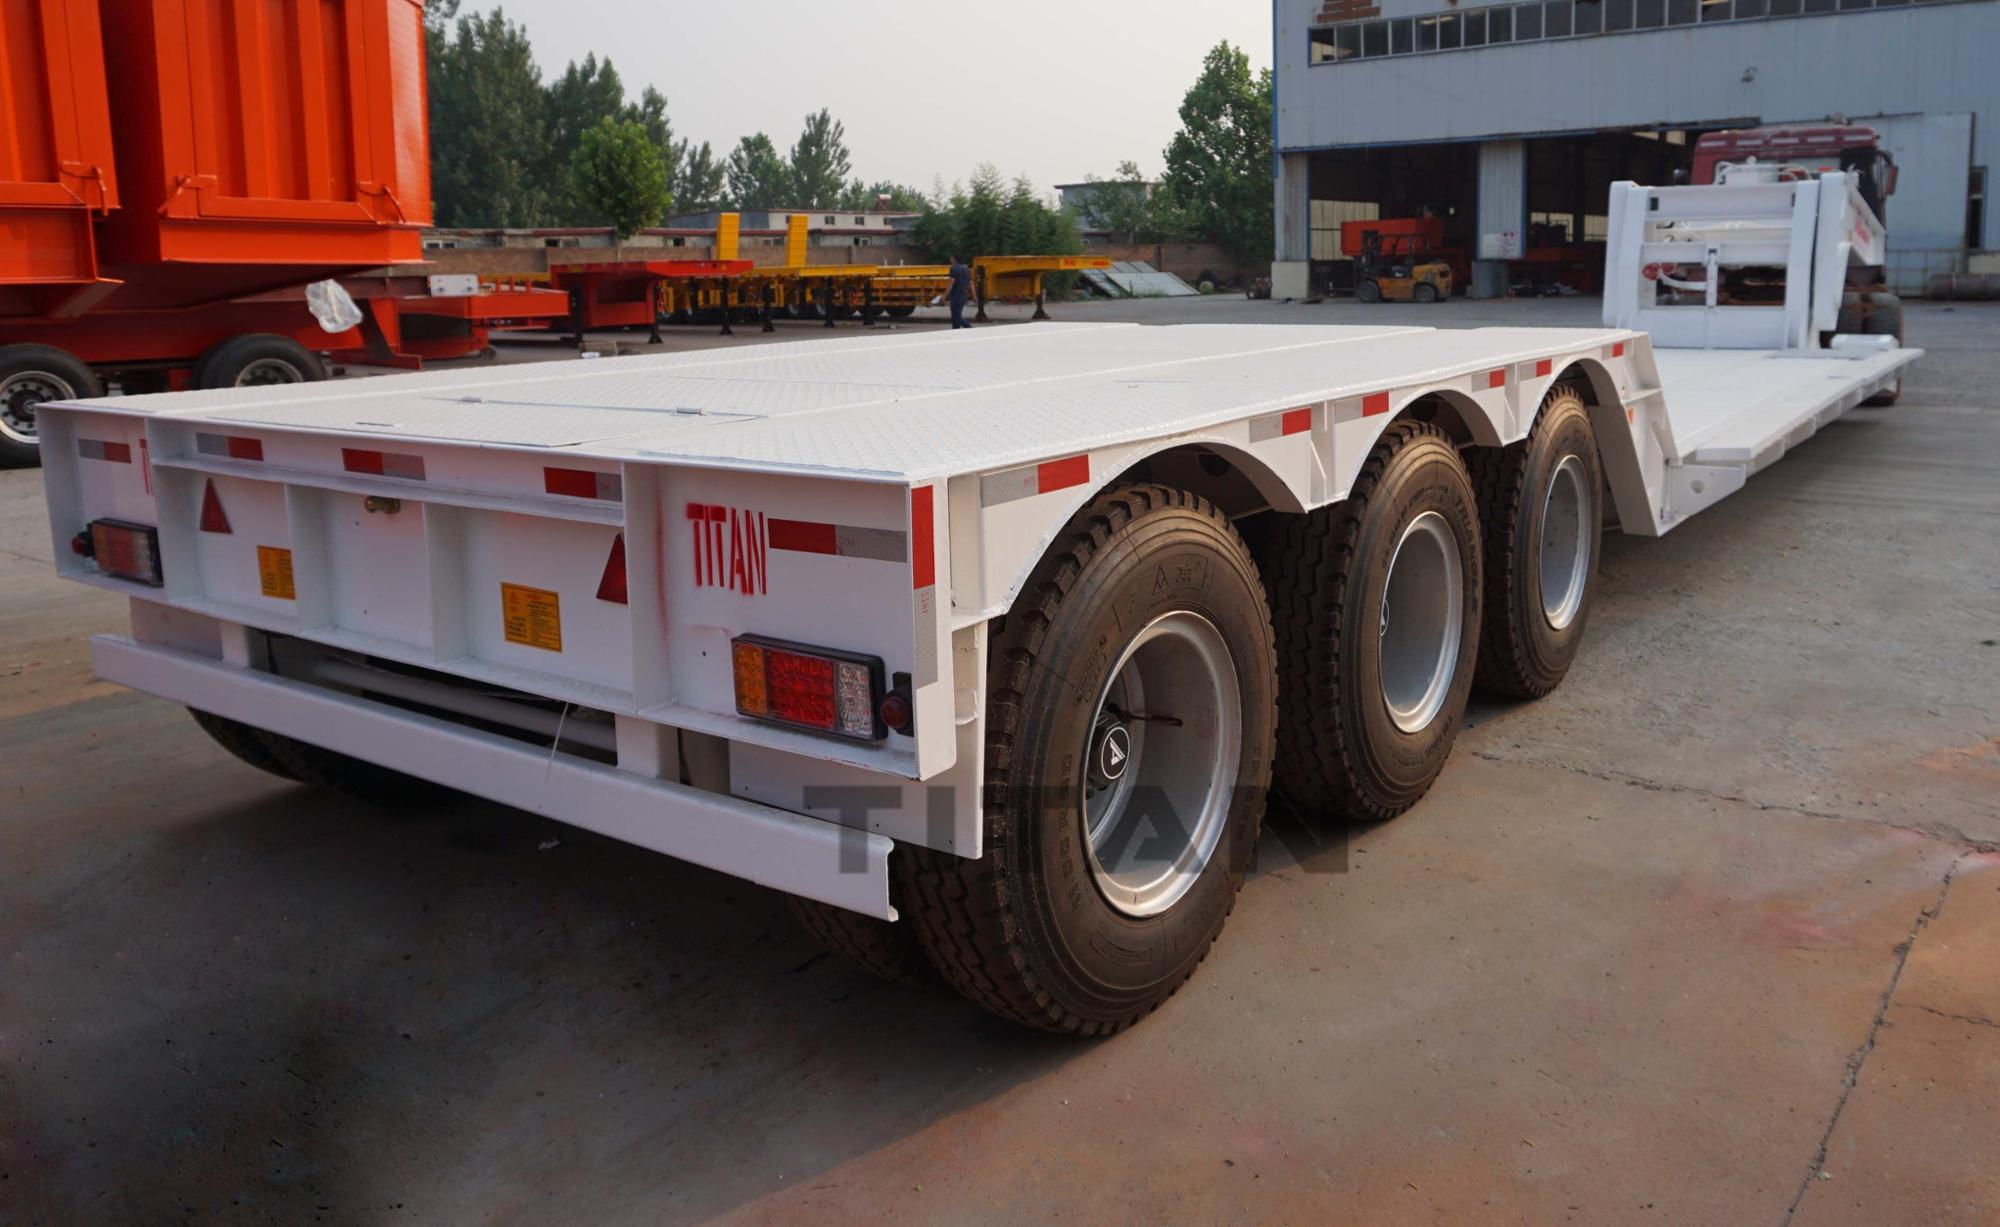 hydraulics removable front loading 100 ton 120 ton 3 axle high ground clearance detachable gooseneck low bed lowboy semi trailer